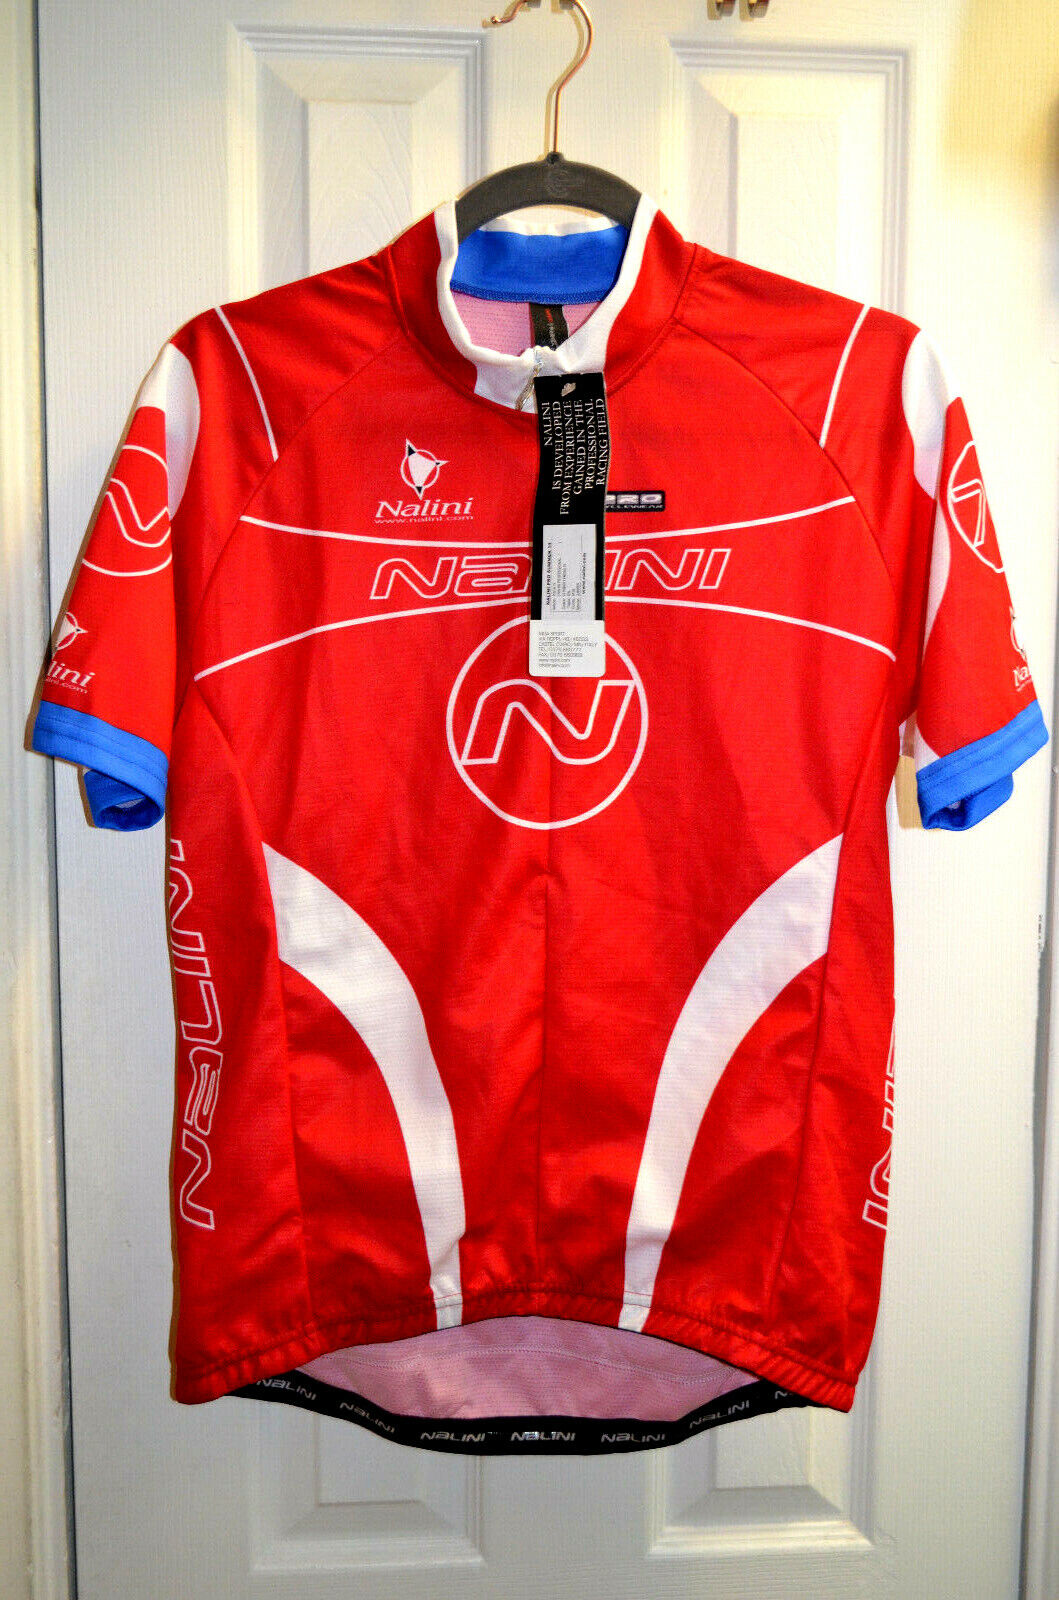 NEW NALINI PISTA  TI  Jersey size XXL  more affordable